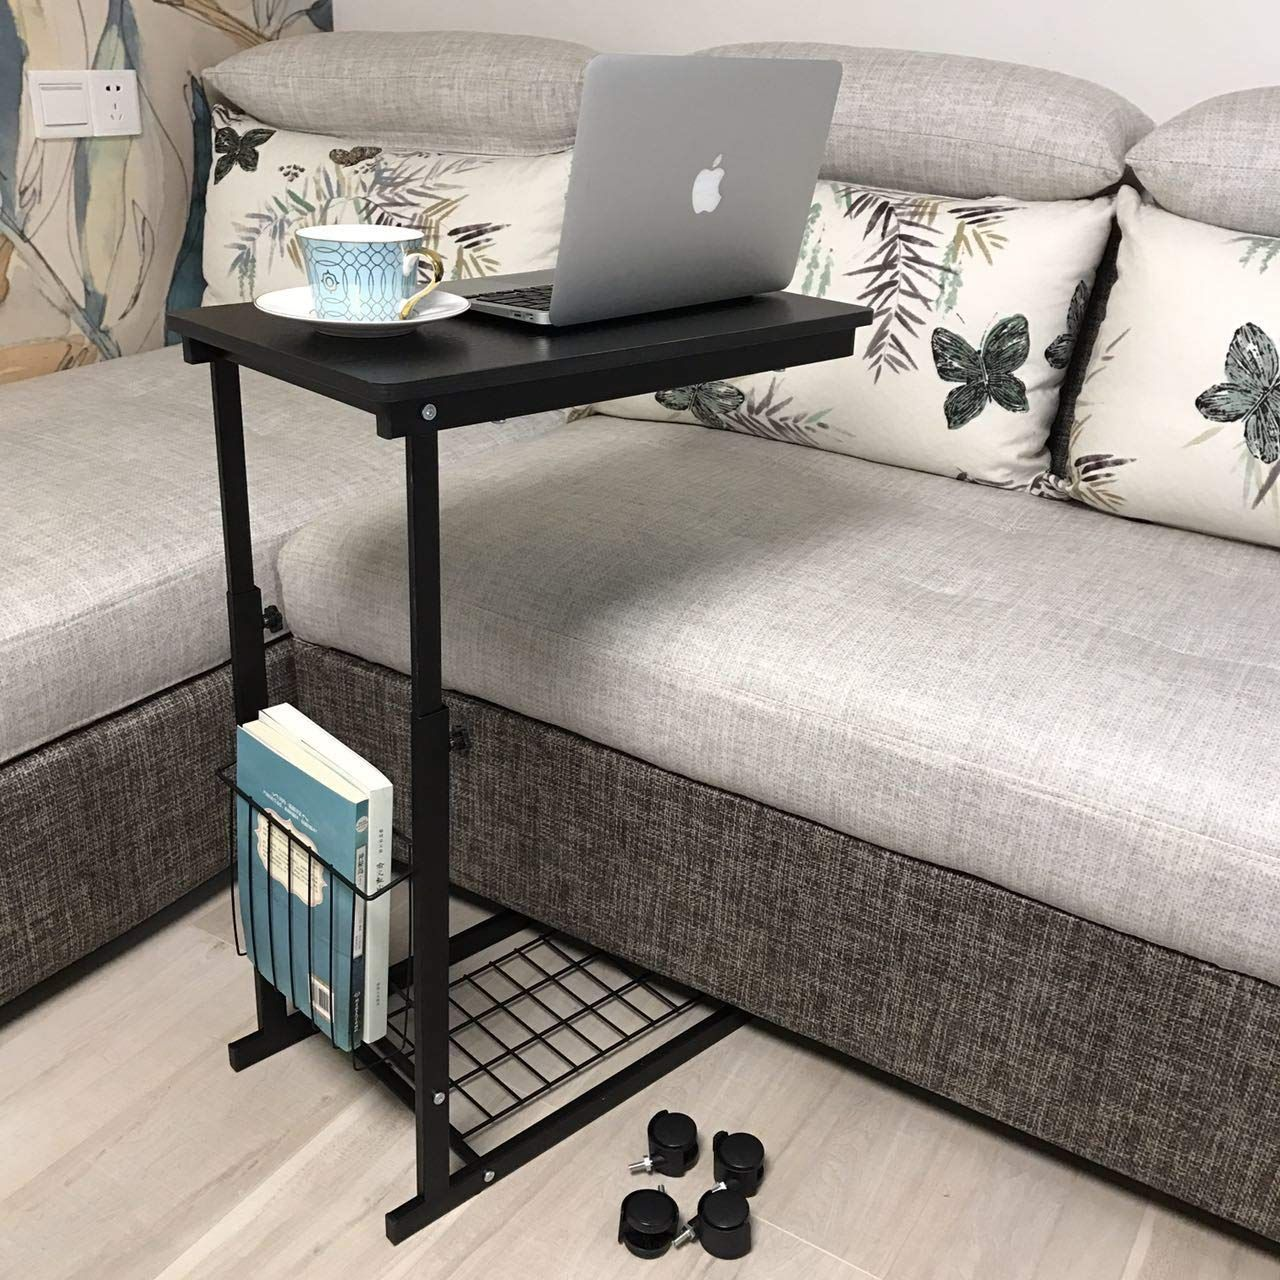 Micoe Height Adjustable With Wheels Sofa Side Table Slide Under Adjustable Console Table With Storage For Entryway Sofa Side Table Couch Table Adjustable Table